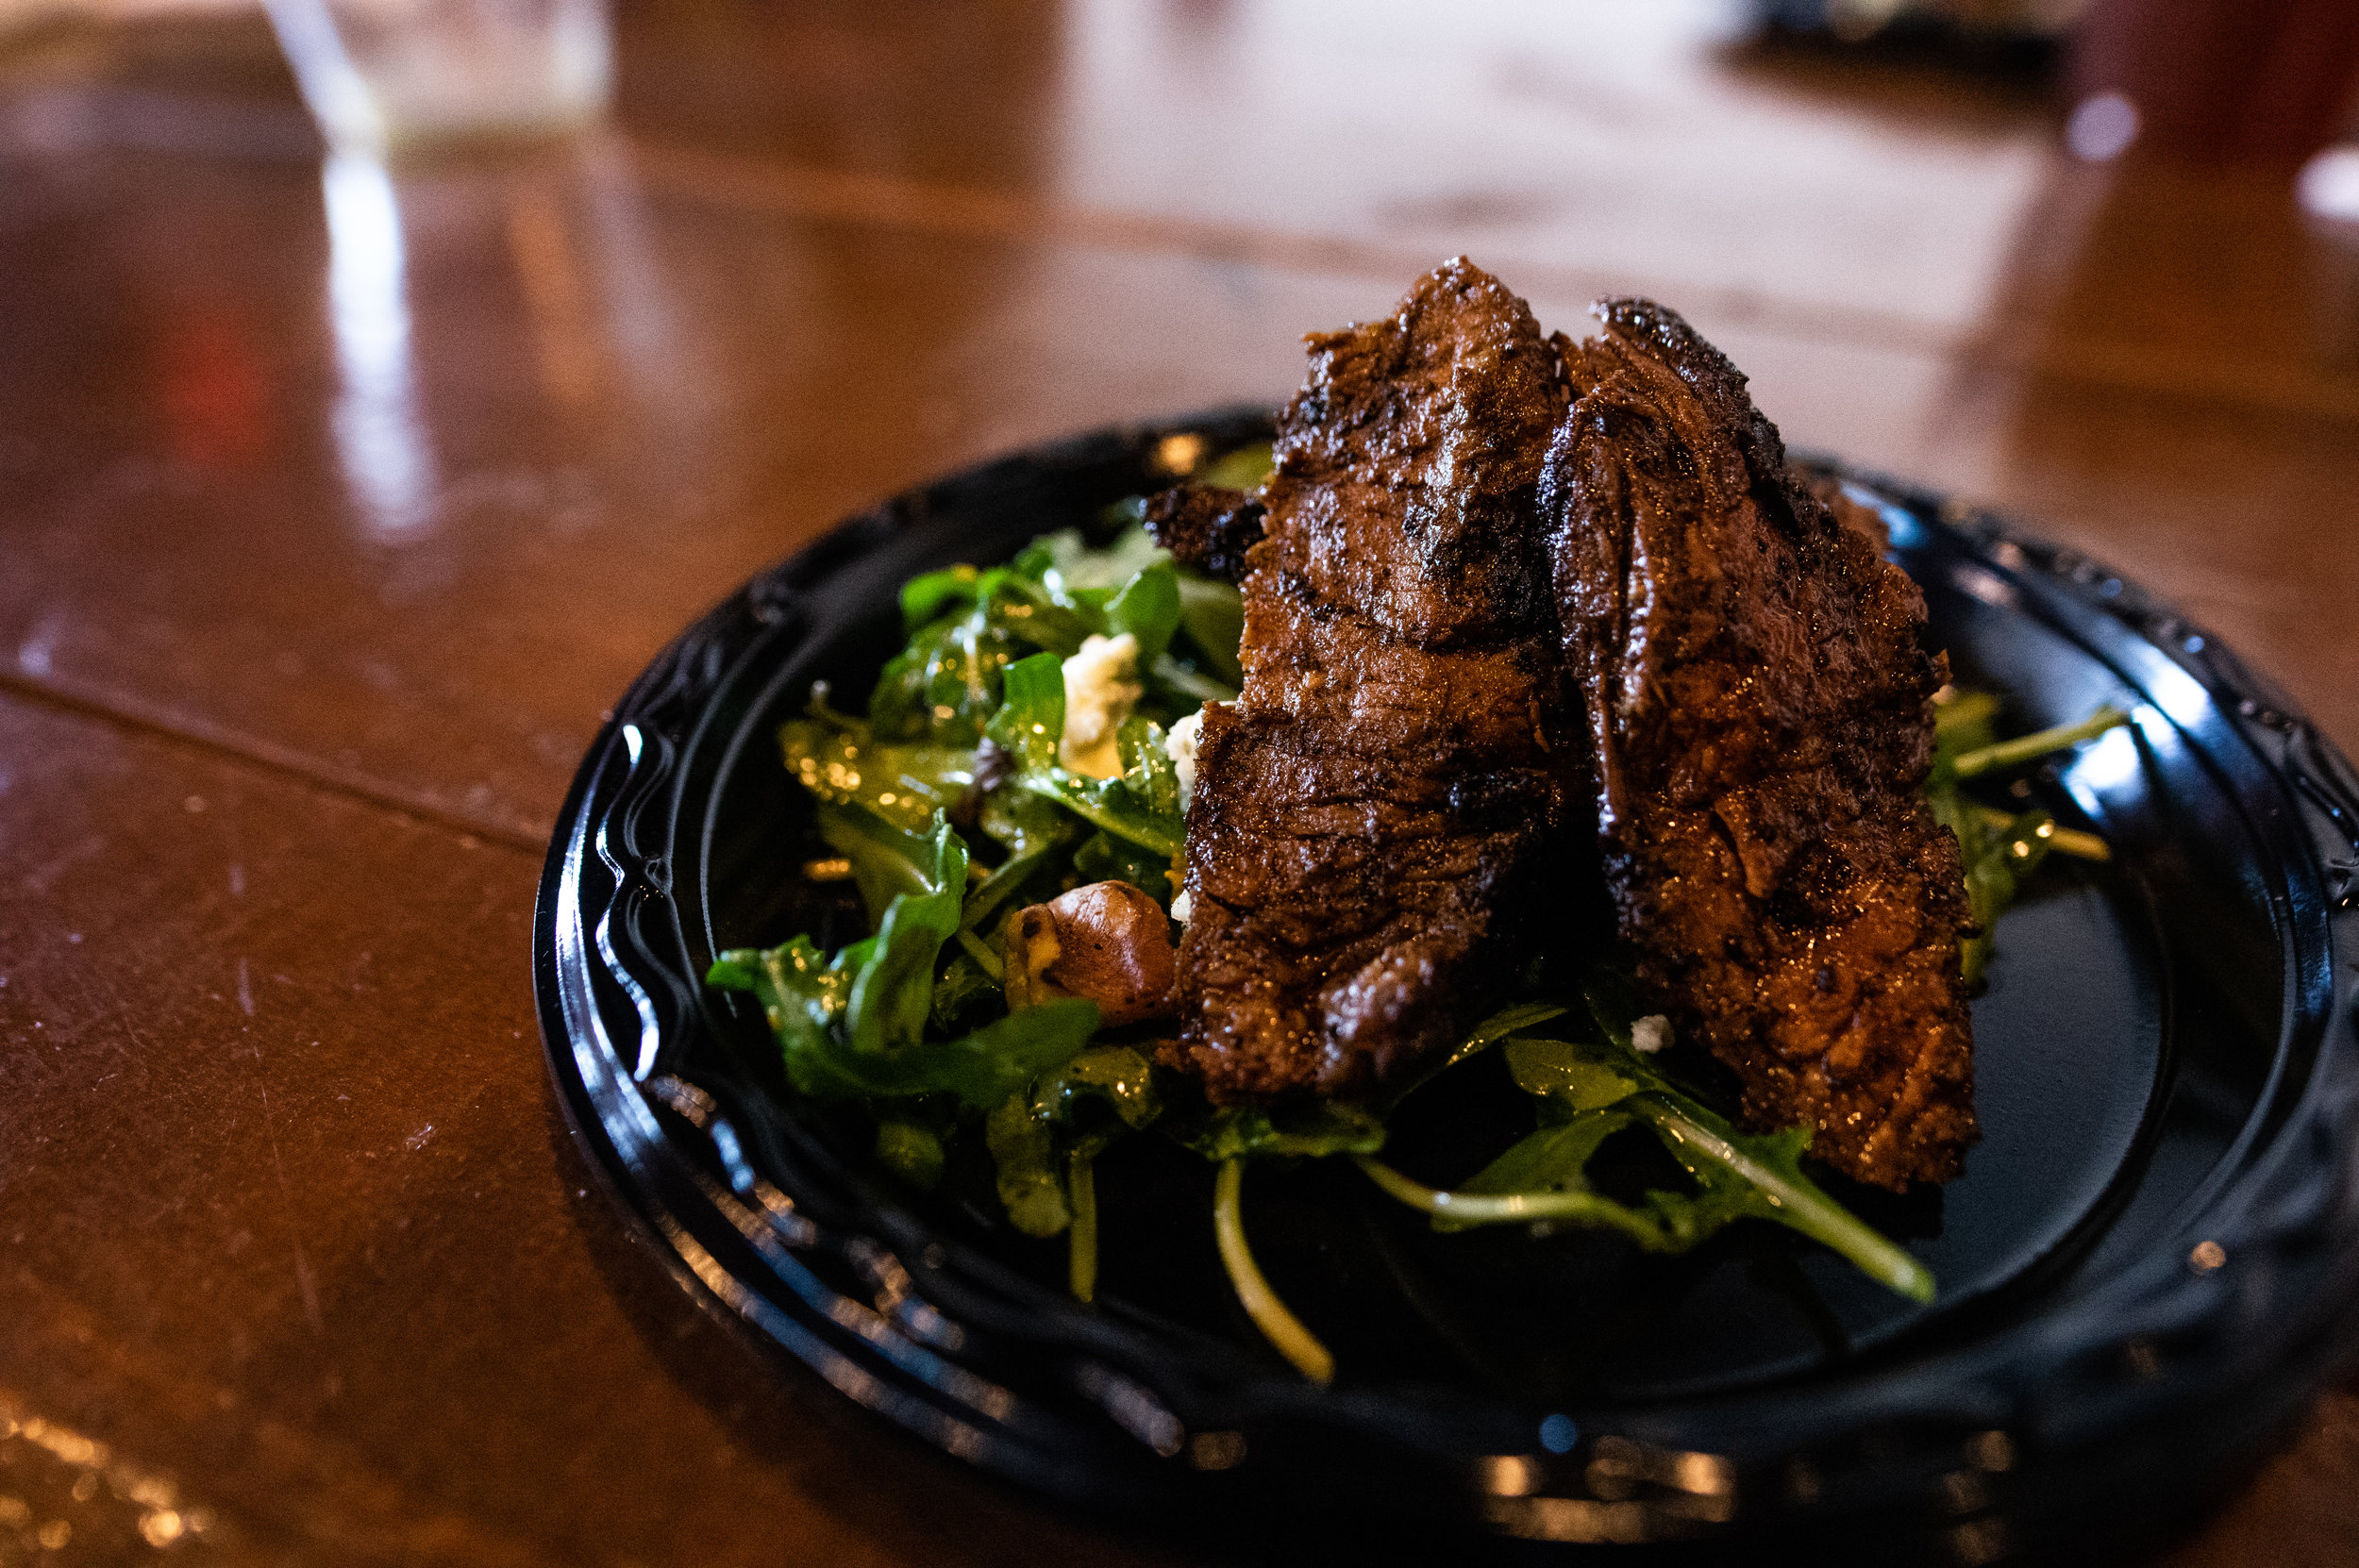 The second course: Steak Salad with Walnuts, Citrus Dressing, and Foir D'Avancio Cheese. Photo by Garrett Smith.